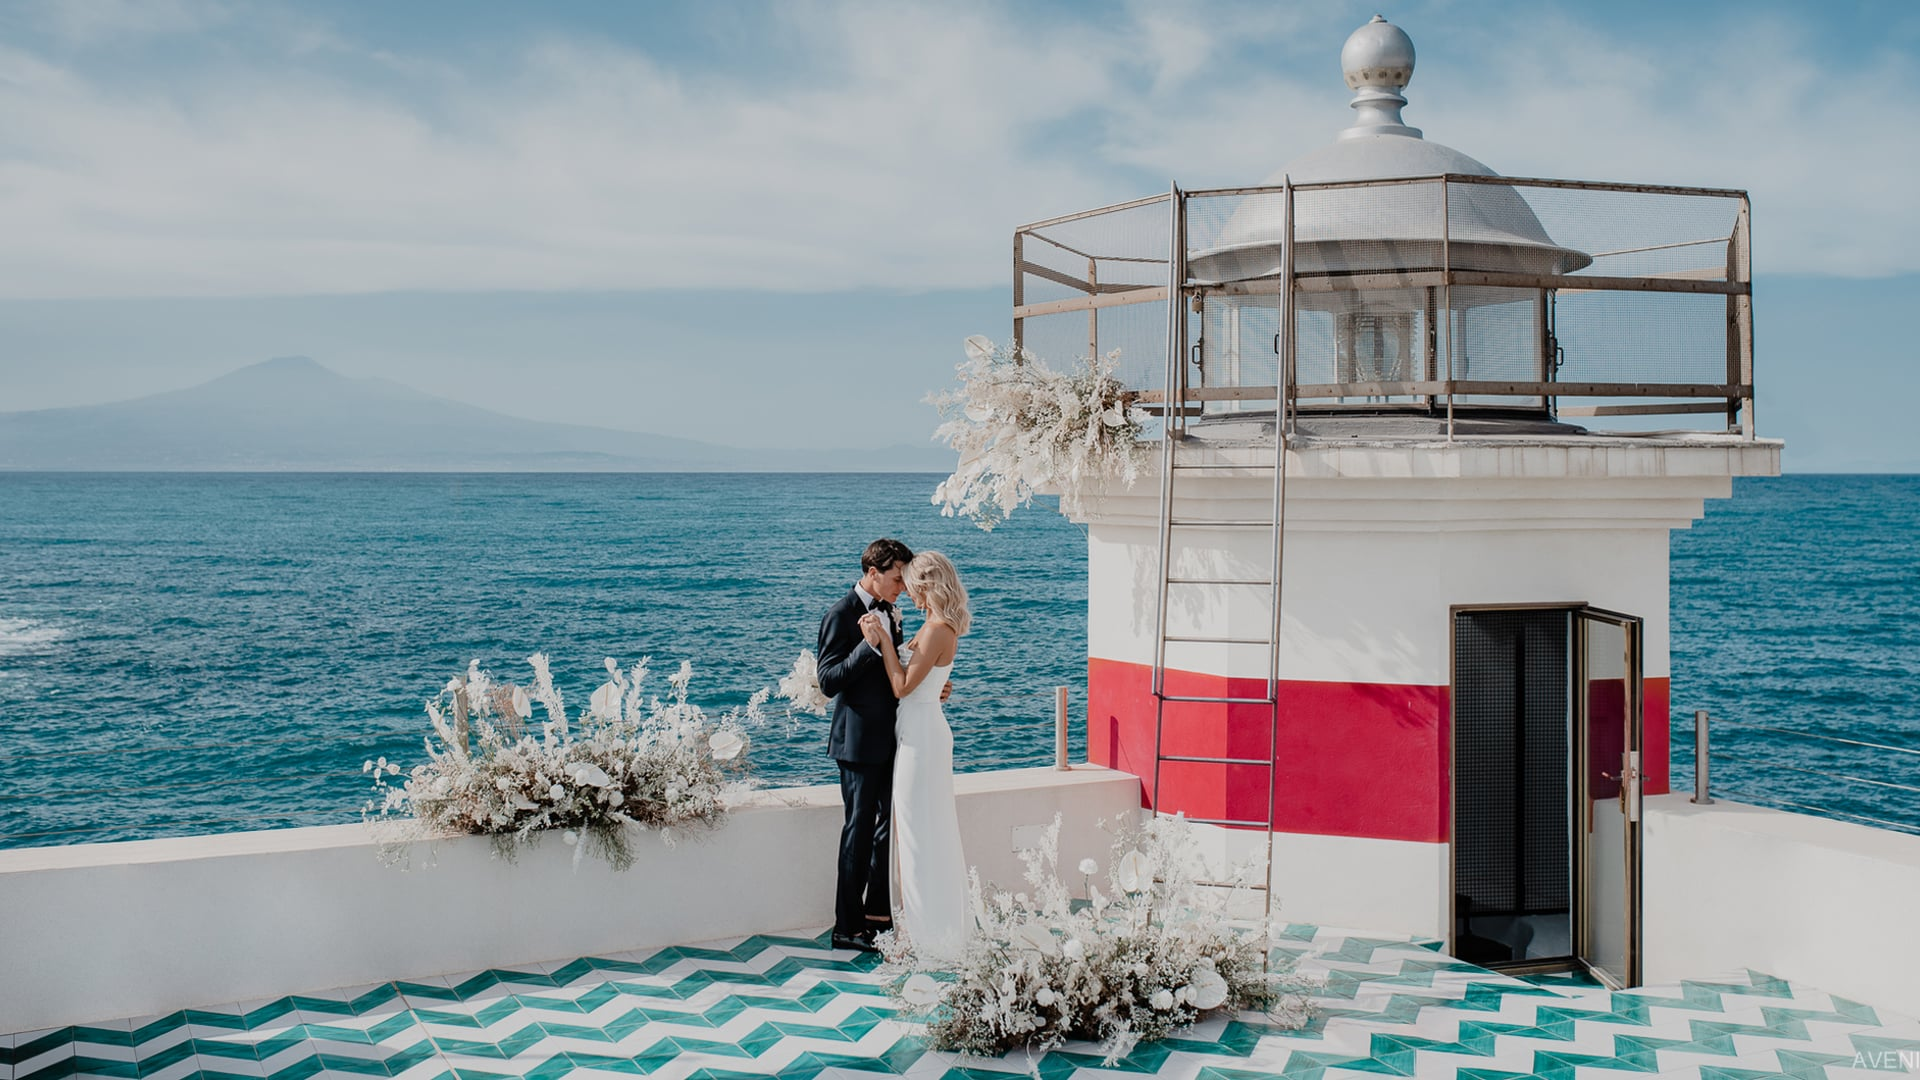 A Lighthouse Romance in Sicily